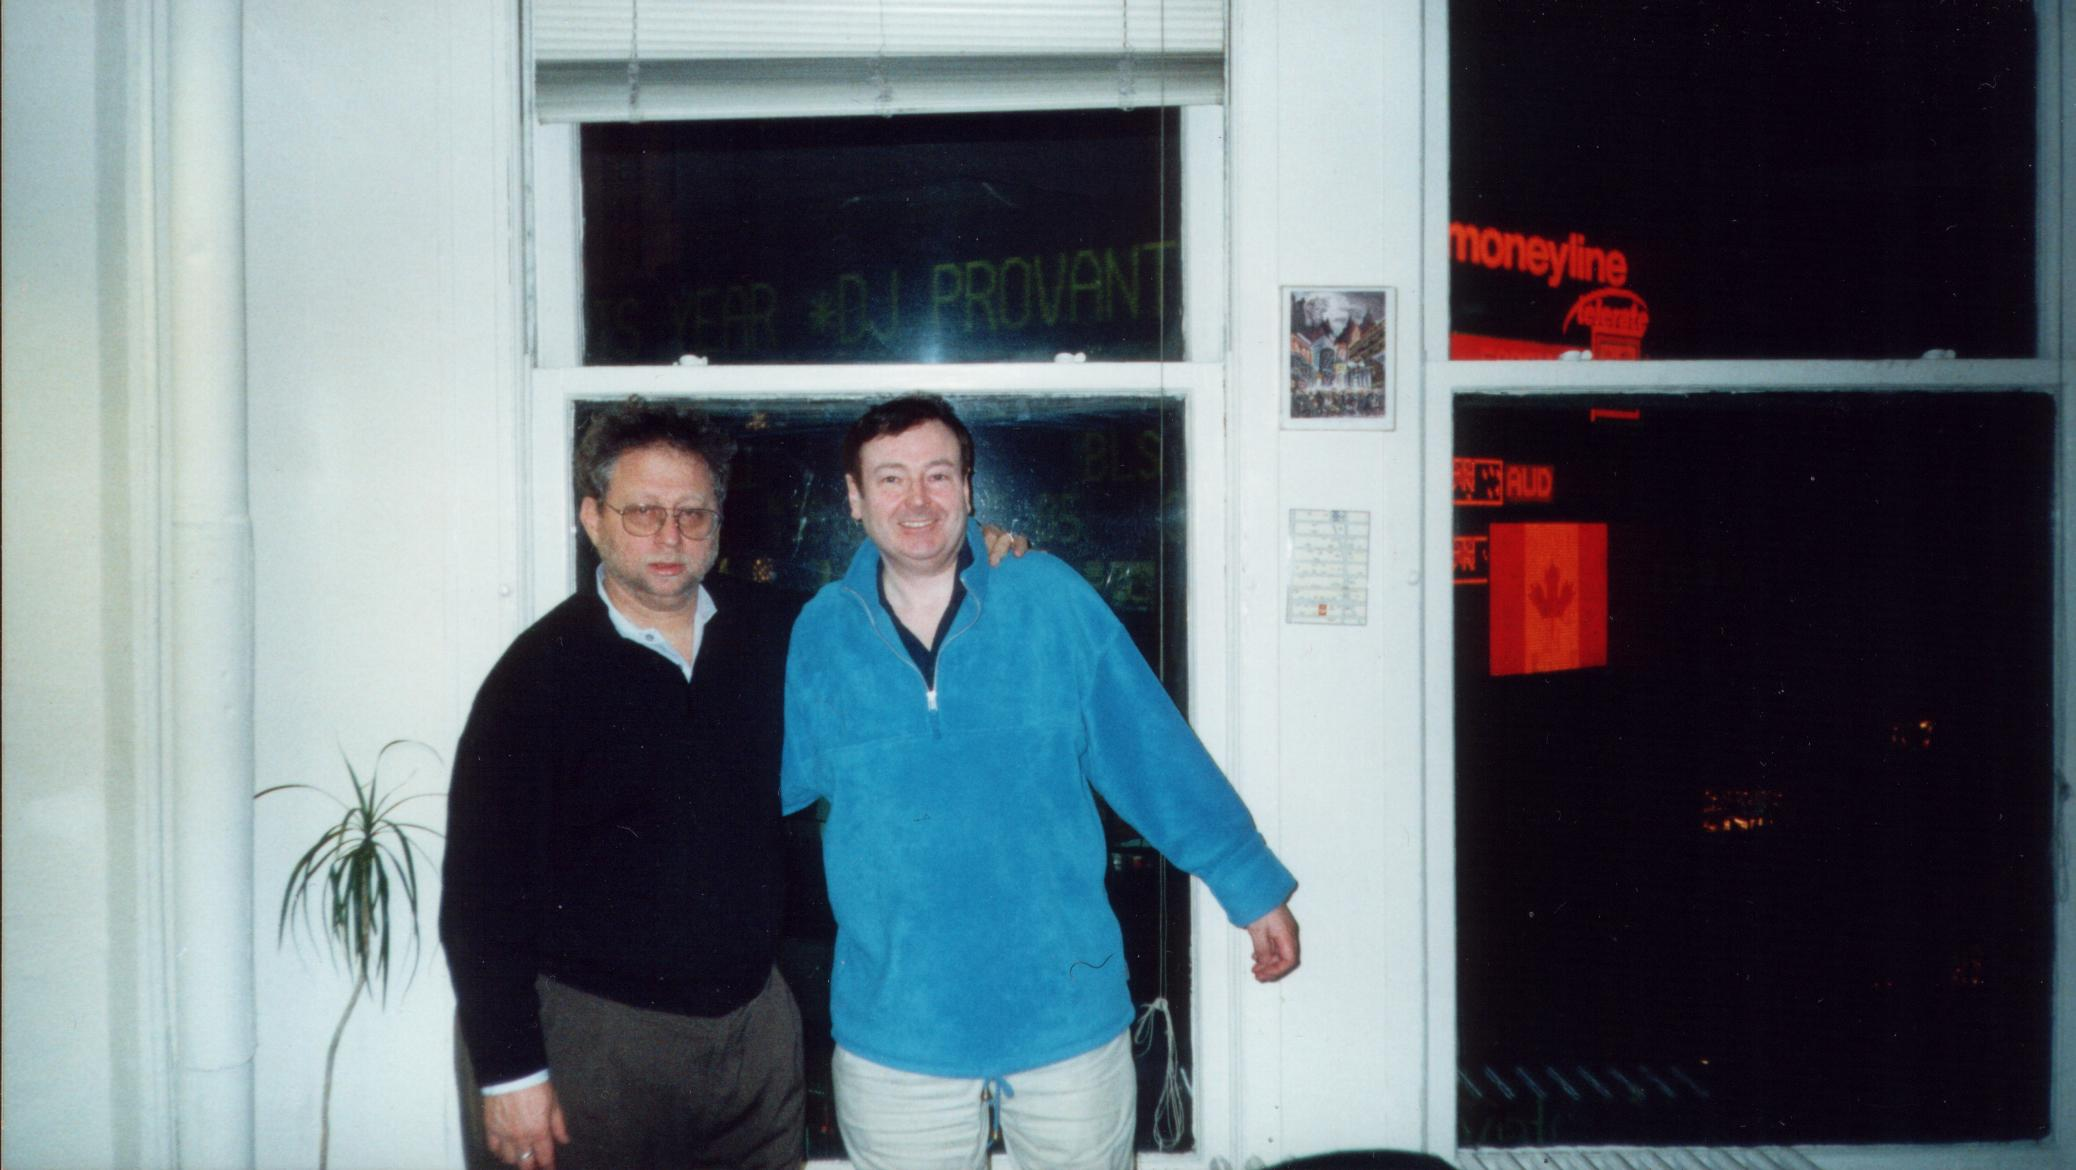 Danny with Paul at Globalvision's old Broadway office in 2002.